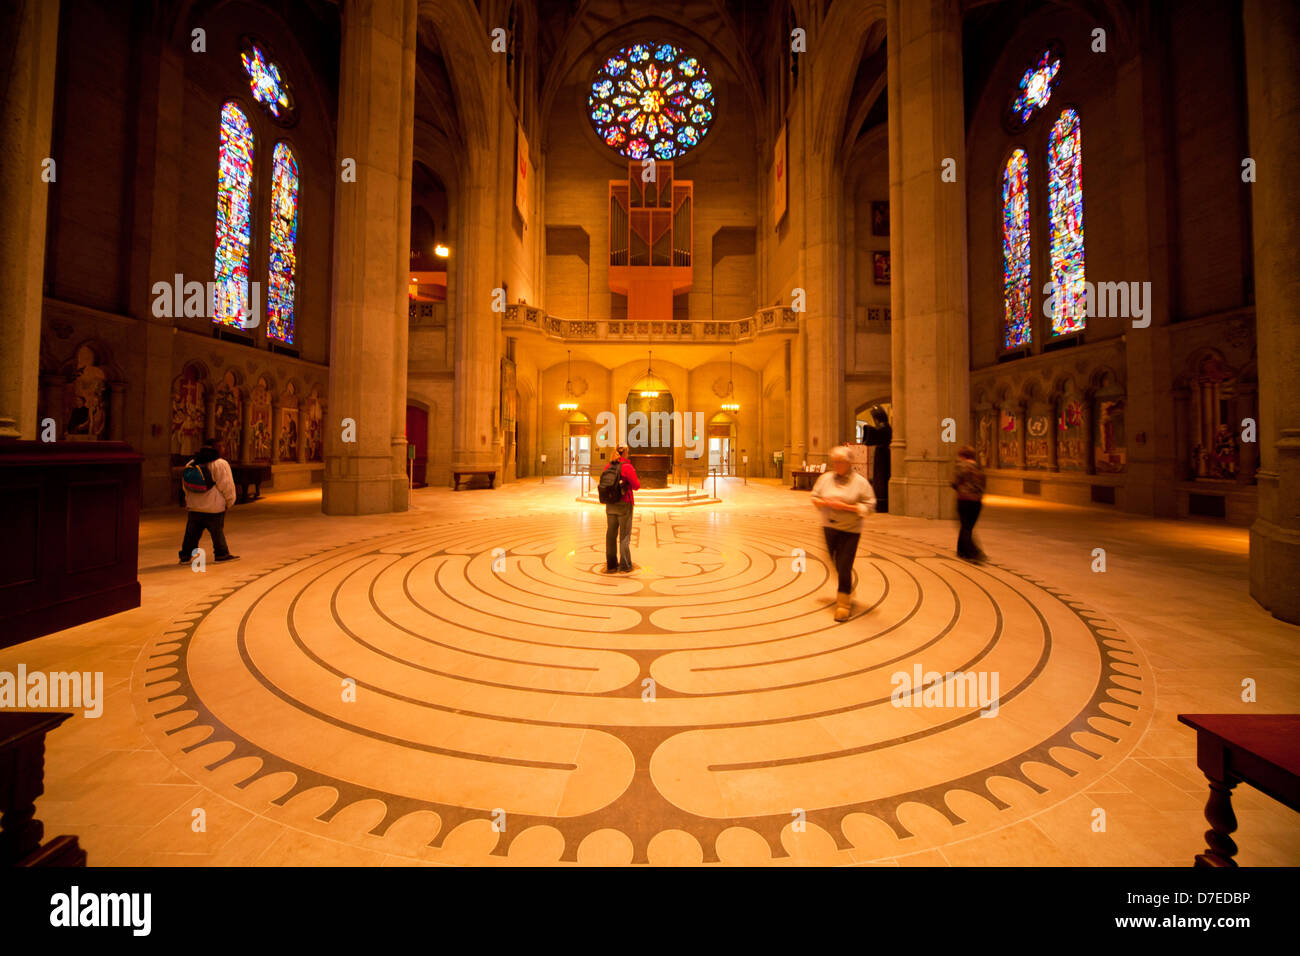 Labyrinth inside Grace Cathedral, San Francisco, California